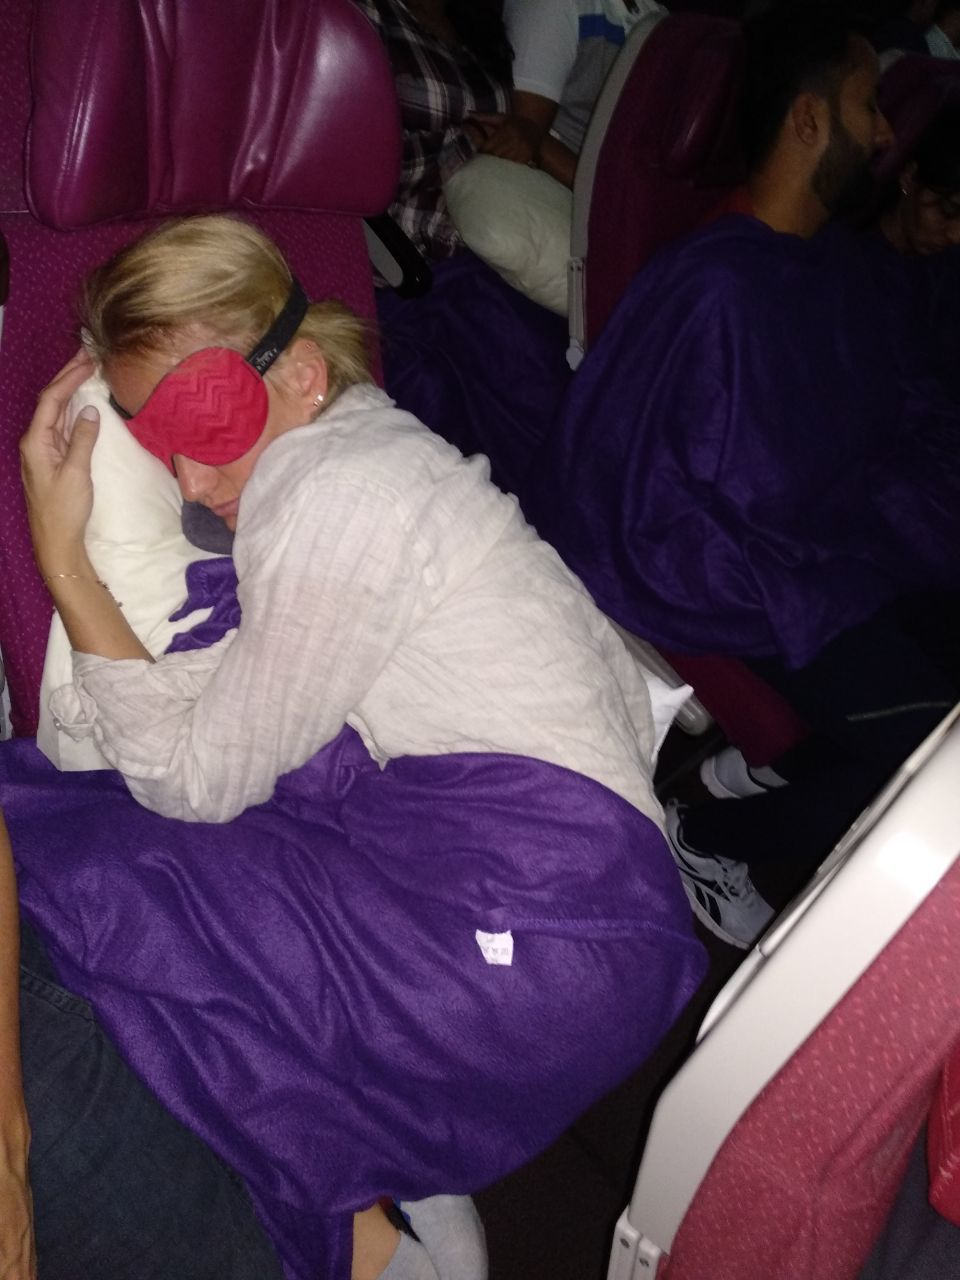 how to deal with long haul flights